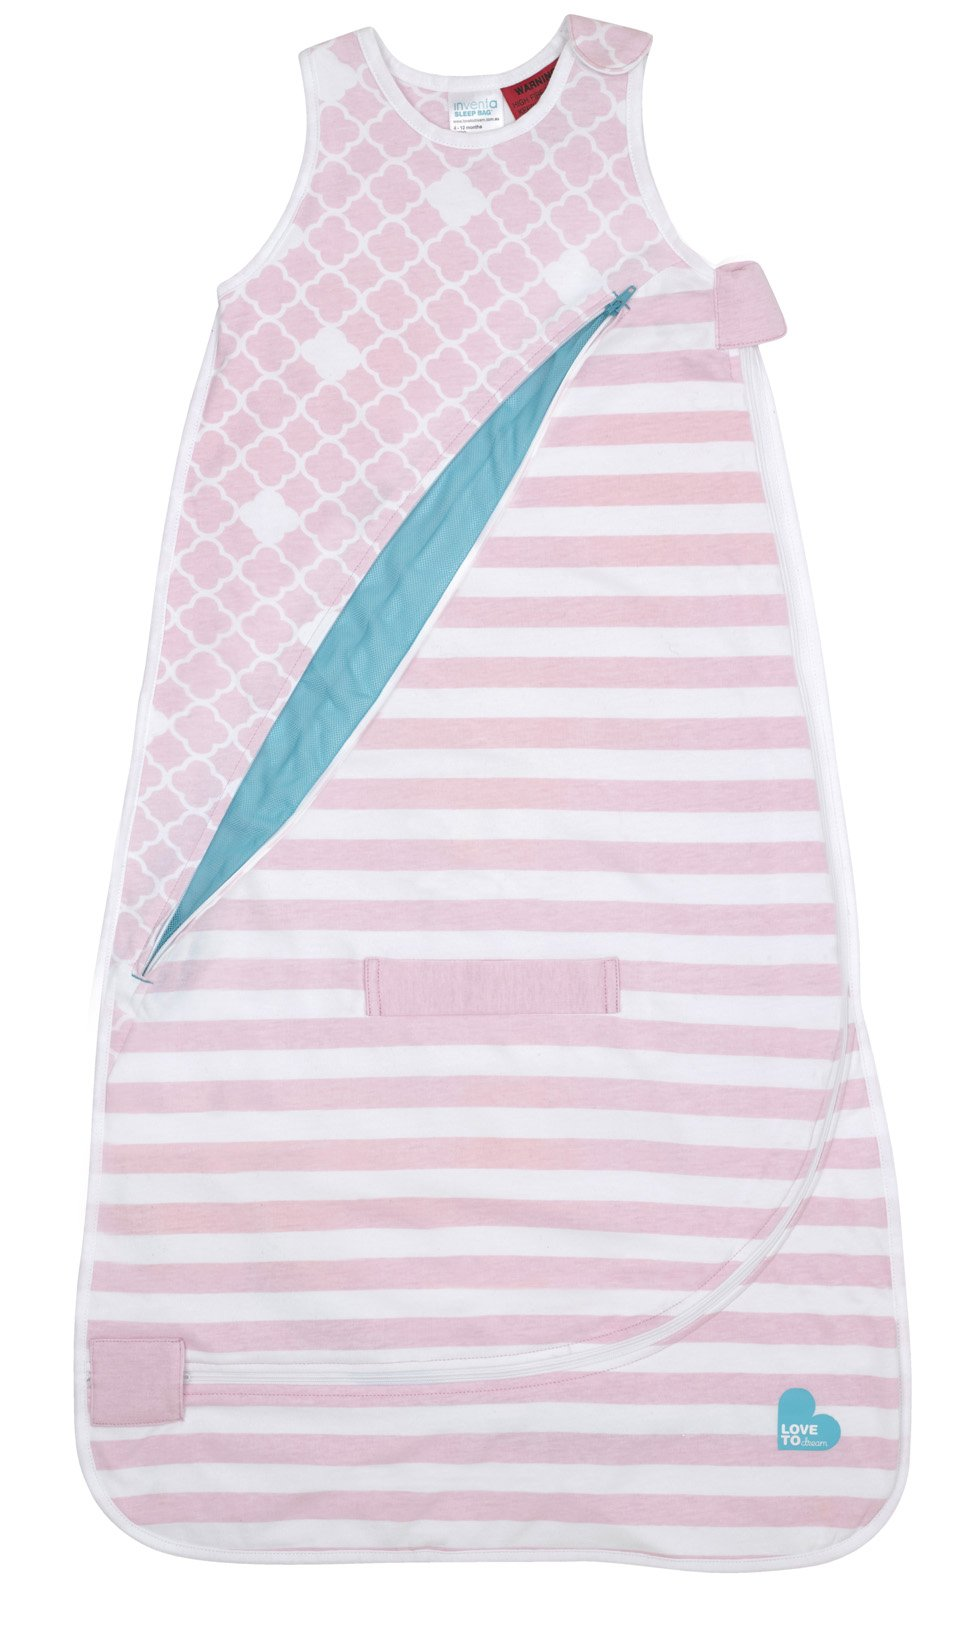 Love To Dream Inventa Sleep Bag/Wearable Blanket with Unique Vented Cooling System, Luxurious Super-Soft Cotton, Stylish Fashion Design, 1.0 TOG, 4-12 Months, Light Pink by Love to Dream (Image #2)